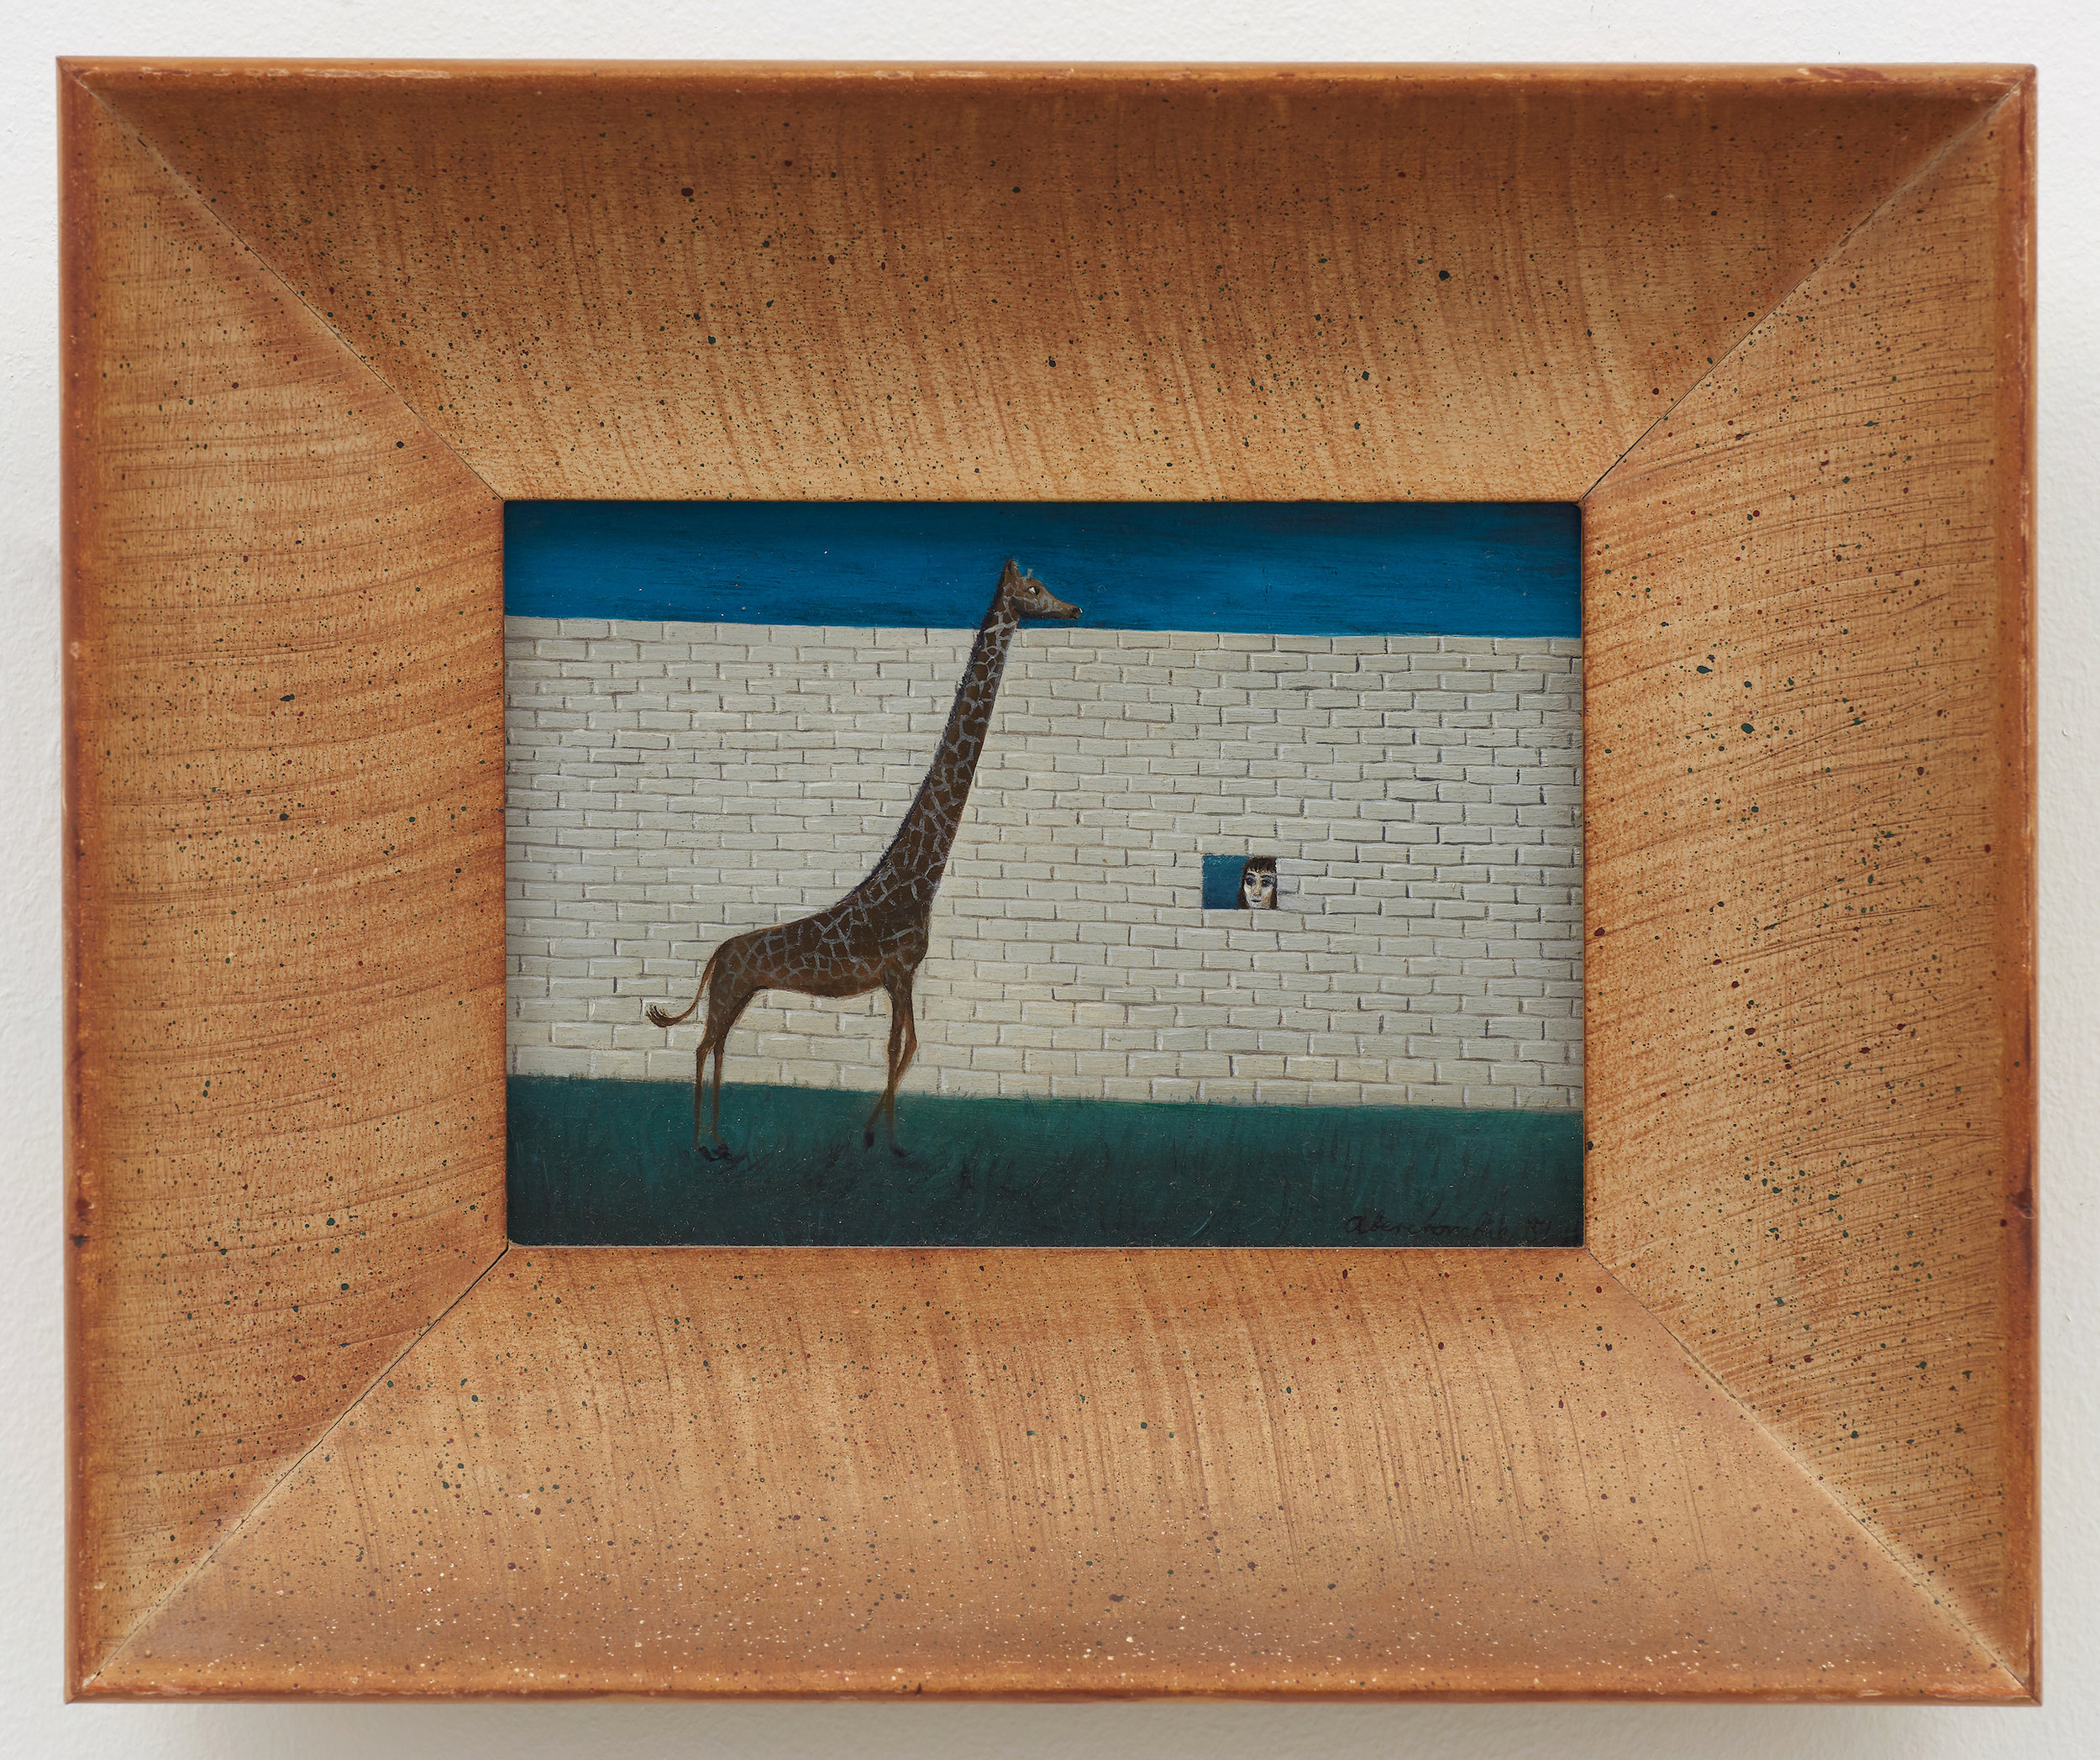 Wall and Giraffe,  1951, Oil on panel, 5 × 7 inches (unframed); 9 3/4 × 11 3/4 inches (framed). Private collection.